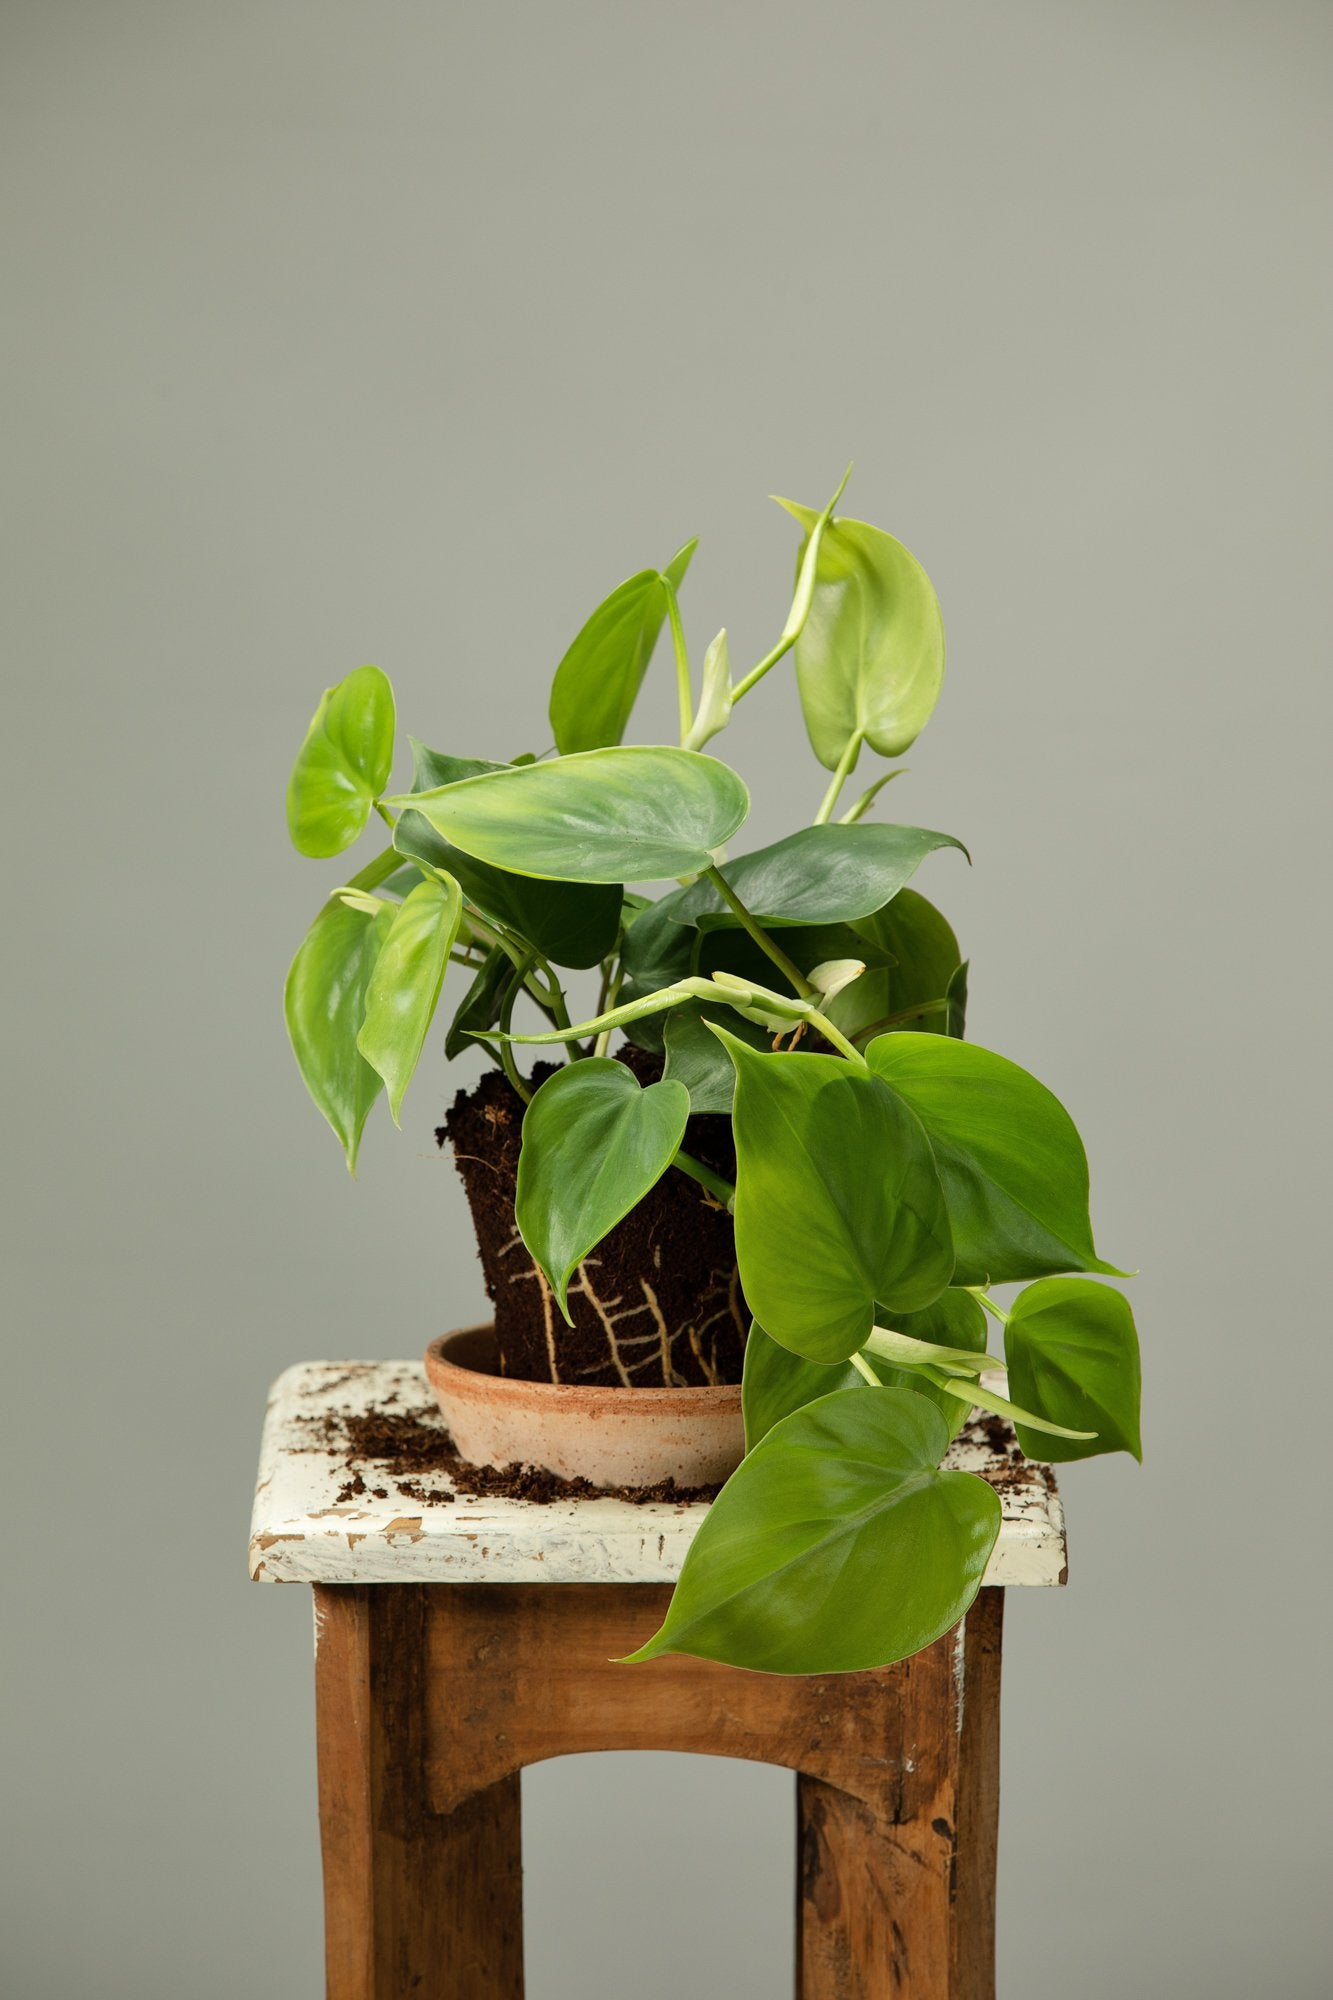 The trailing Heartleaf Philodendron indoor plant, which is symbolic of love.